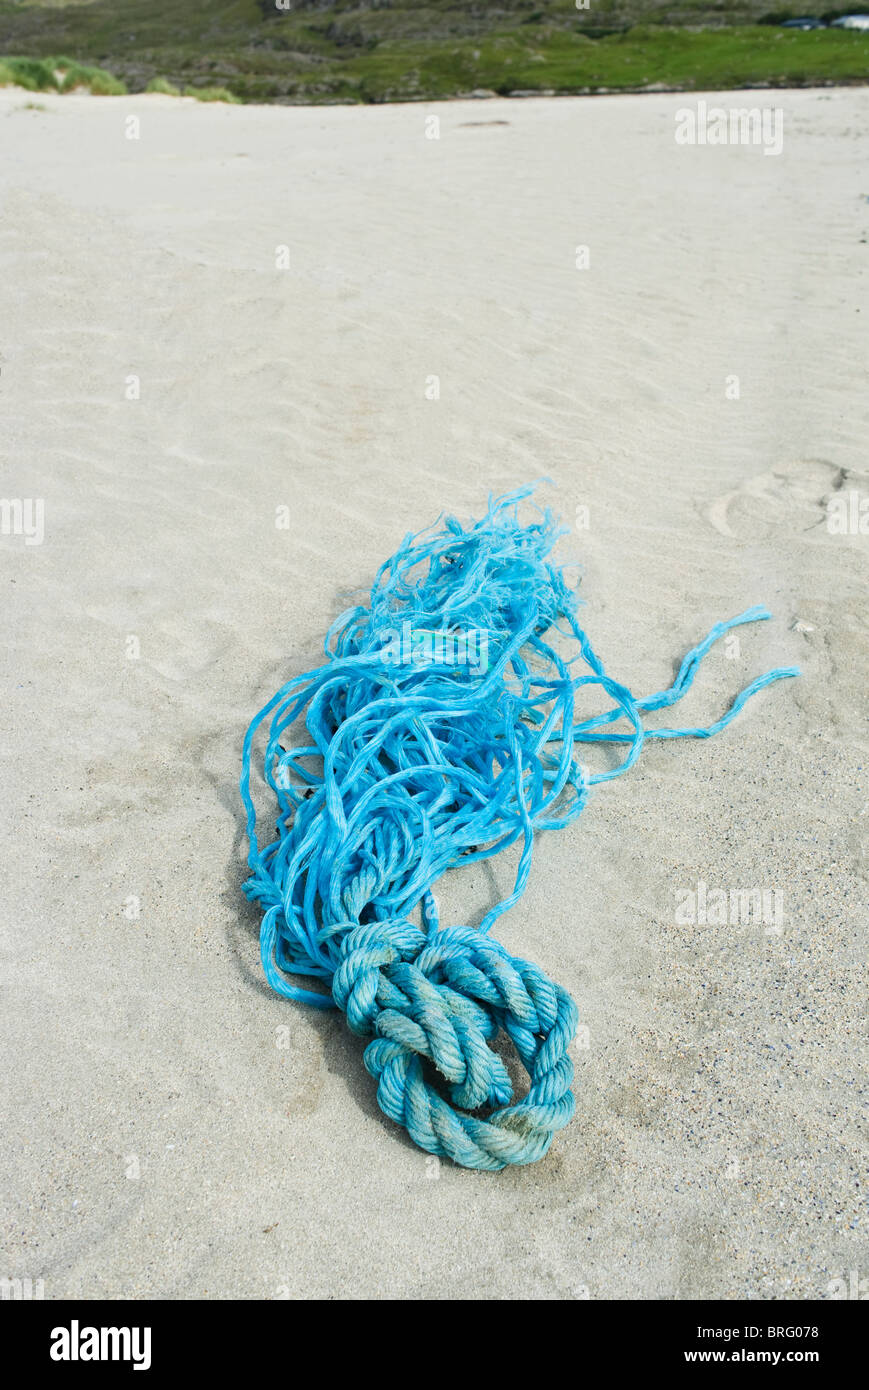 A discarded skein of blue rope on a sandy beach - Stock Image